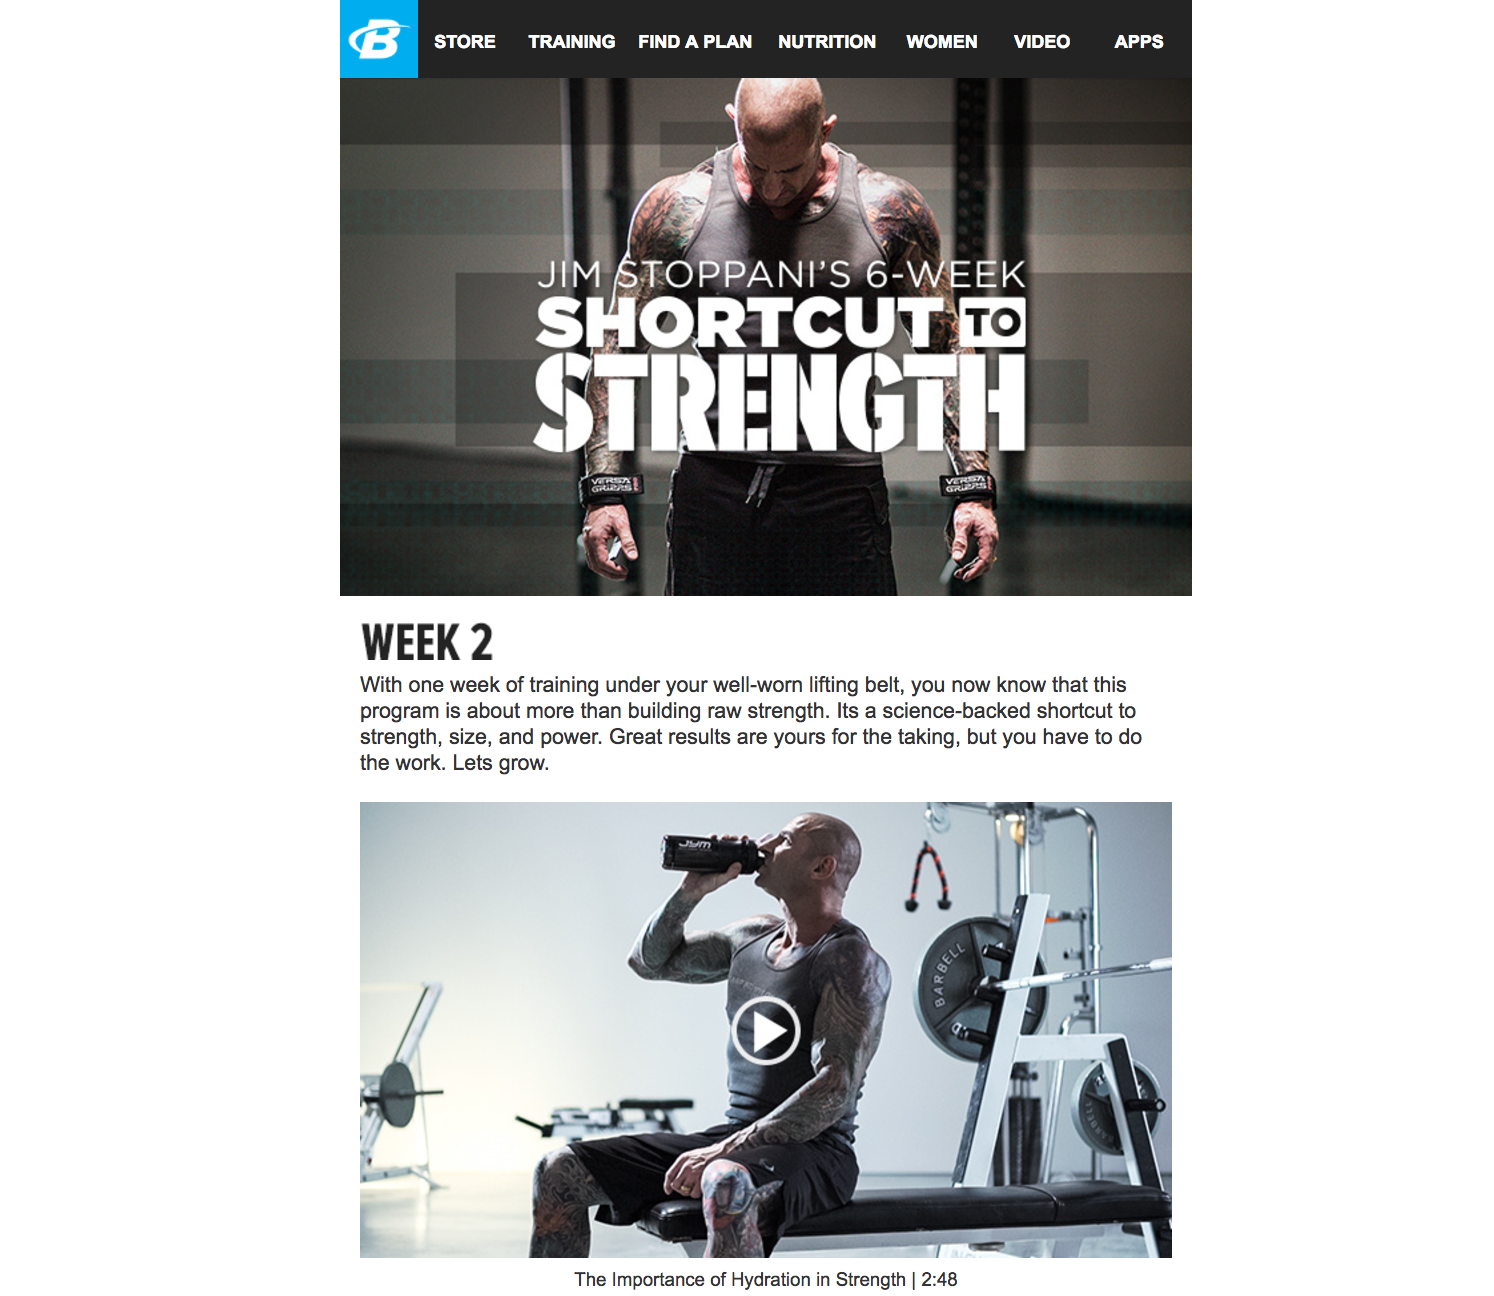 Jim Stoppani's 6-Week Shortcut To Strength   I wrote copy for the weekly email blasts users received when they signed up for the program.